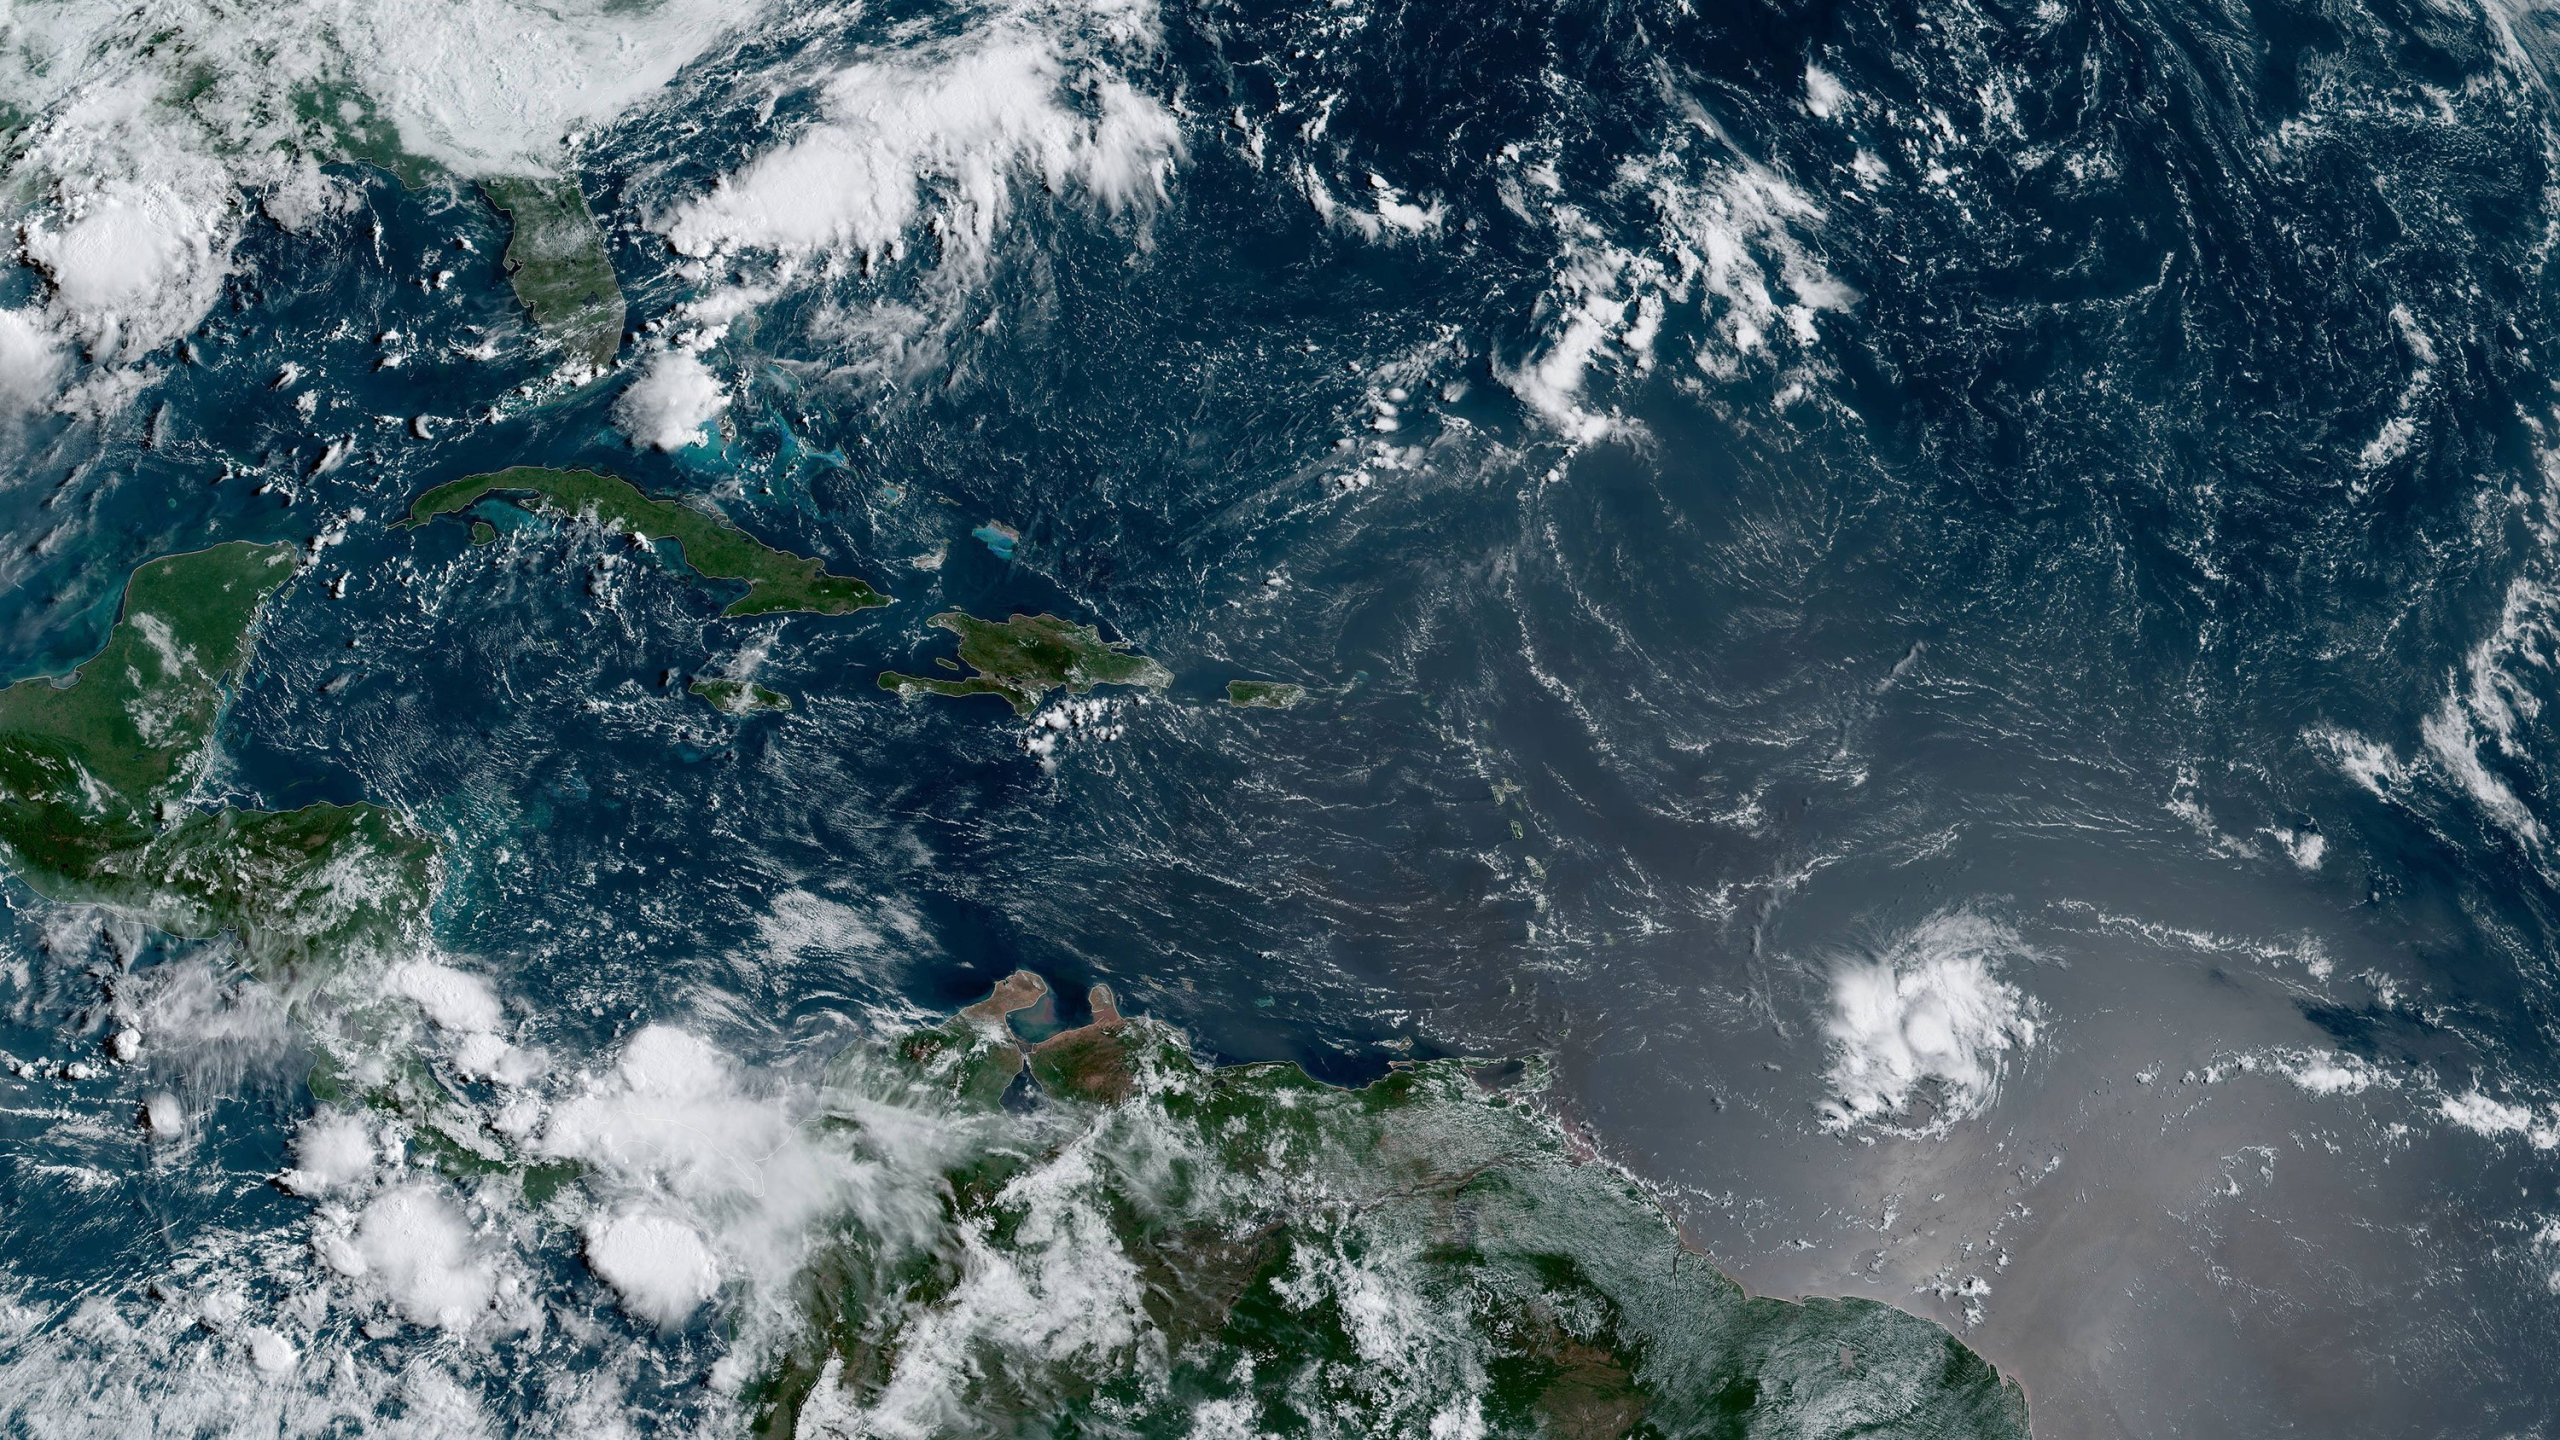 Tropical Storm Dorian is expected to strengthen into a hurricane by Wednesday morning and bring wind, rain and storm surges to the Lesser Antilles and Puerto Rico over the coming week. (Credit: NOAA)